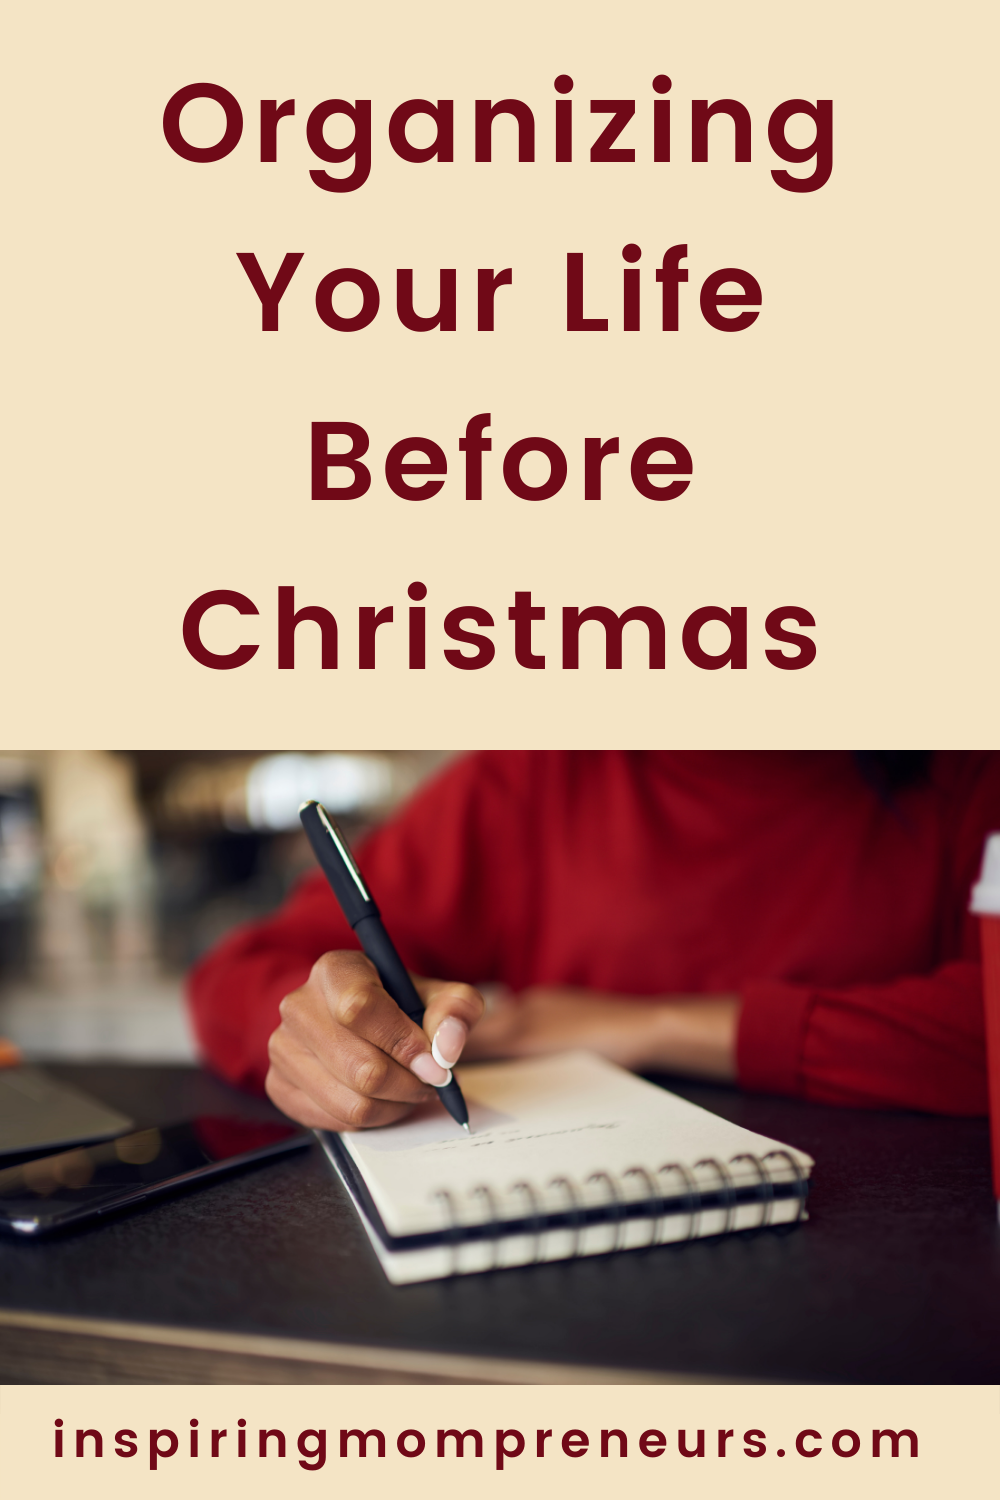 Now that we have only a few months until Christmas, it is time for us to get organised and start to get our lives and our homes ready for the festive season. #getorganized #organizingyourlife #beforechristmas